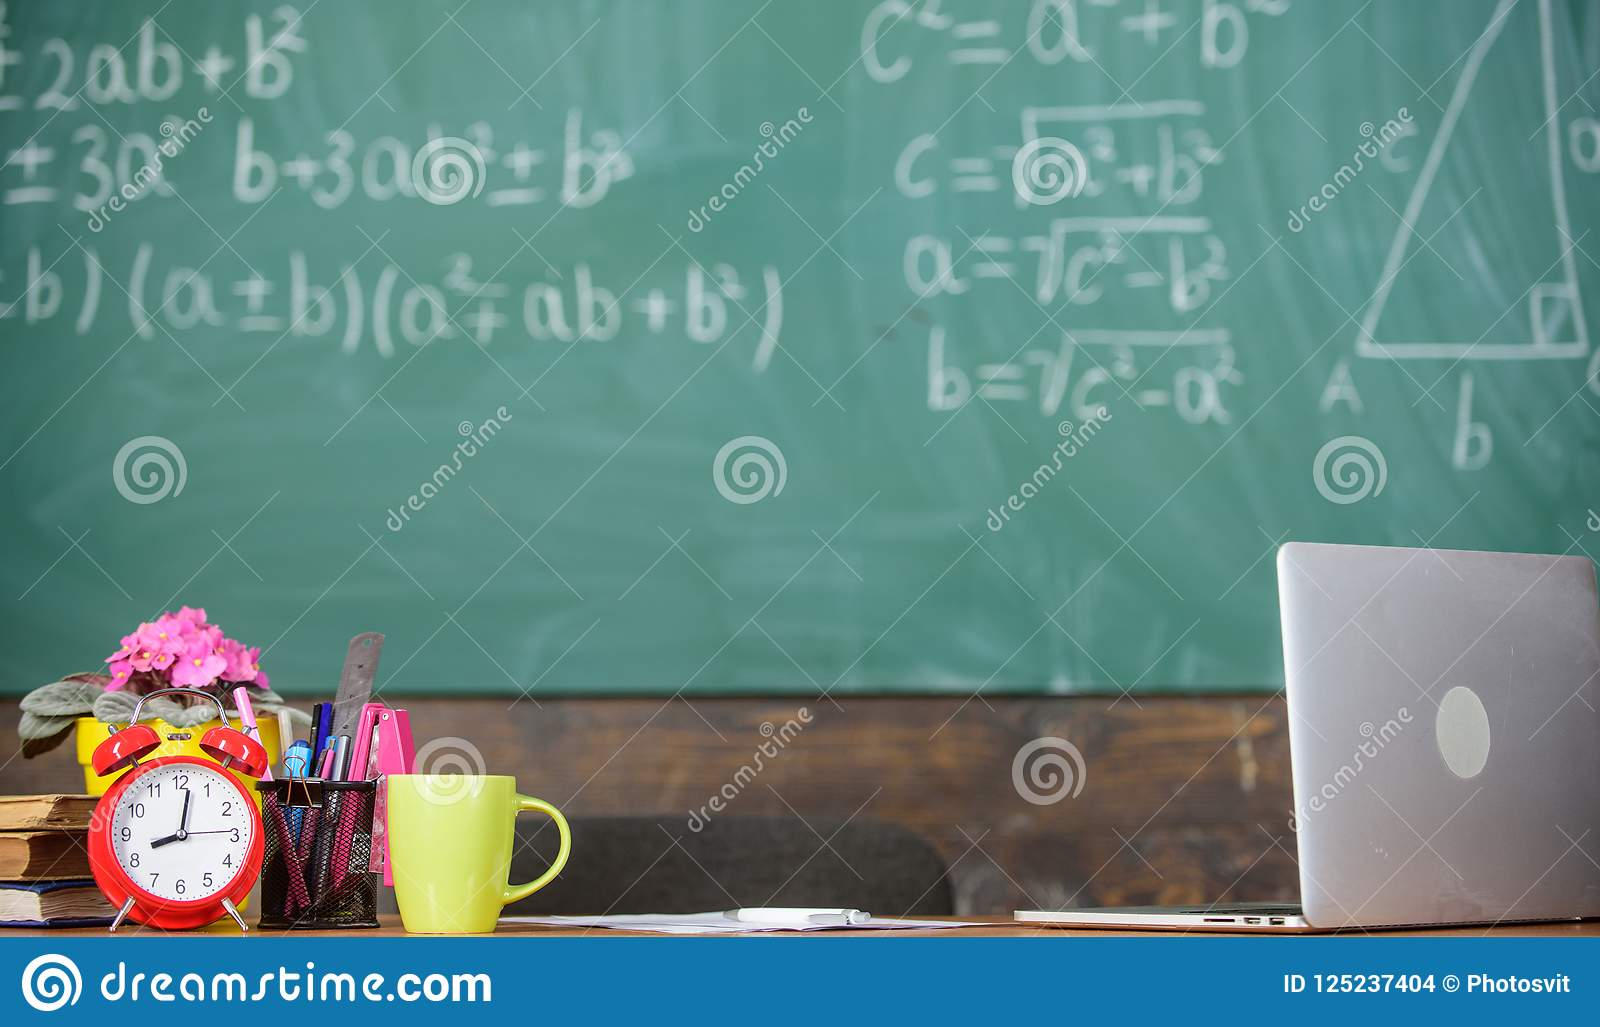 Teachers attributes. Working conditions which prospective teachers must consider. Table with school supplies alarm clock